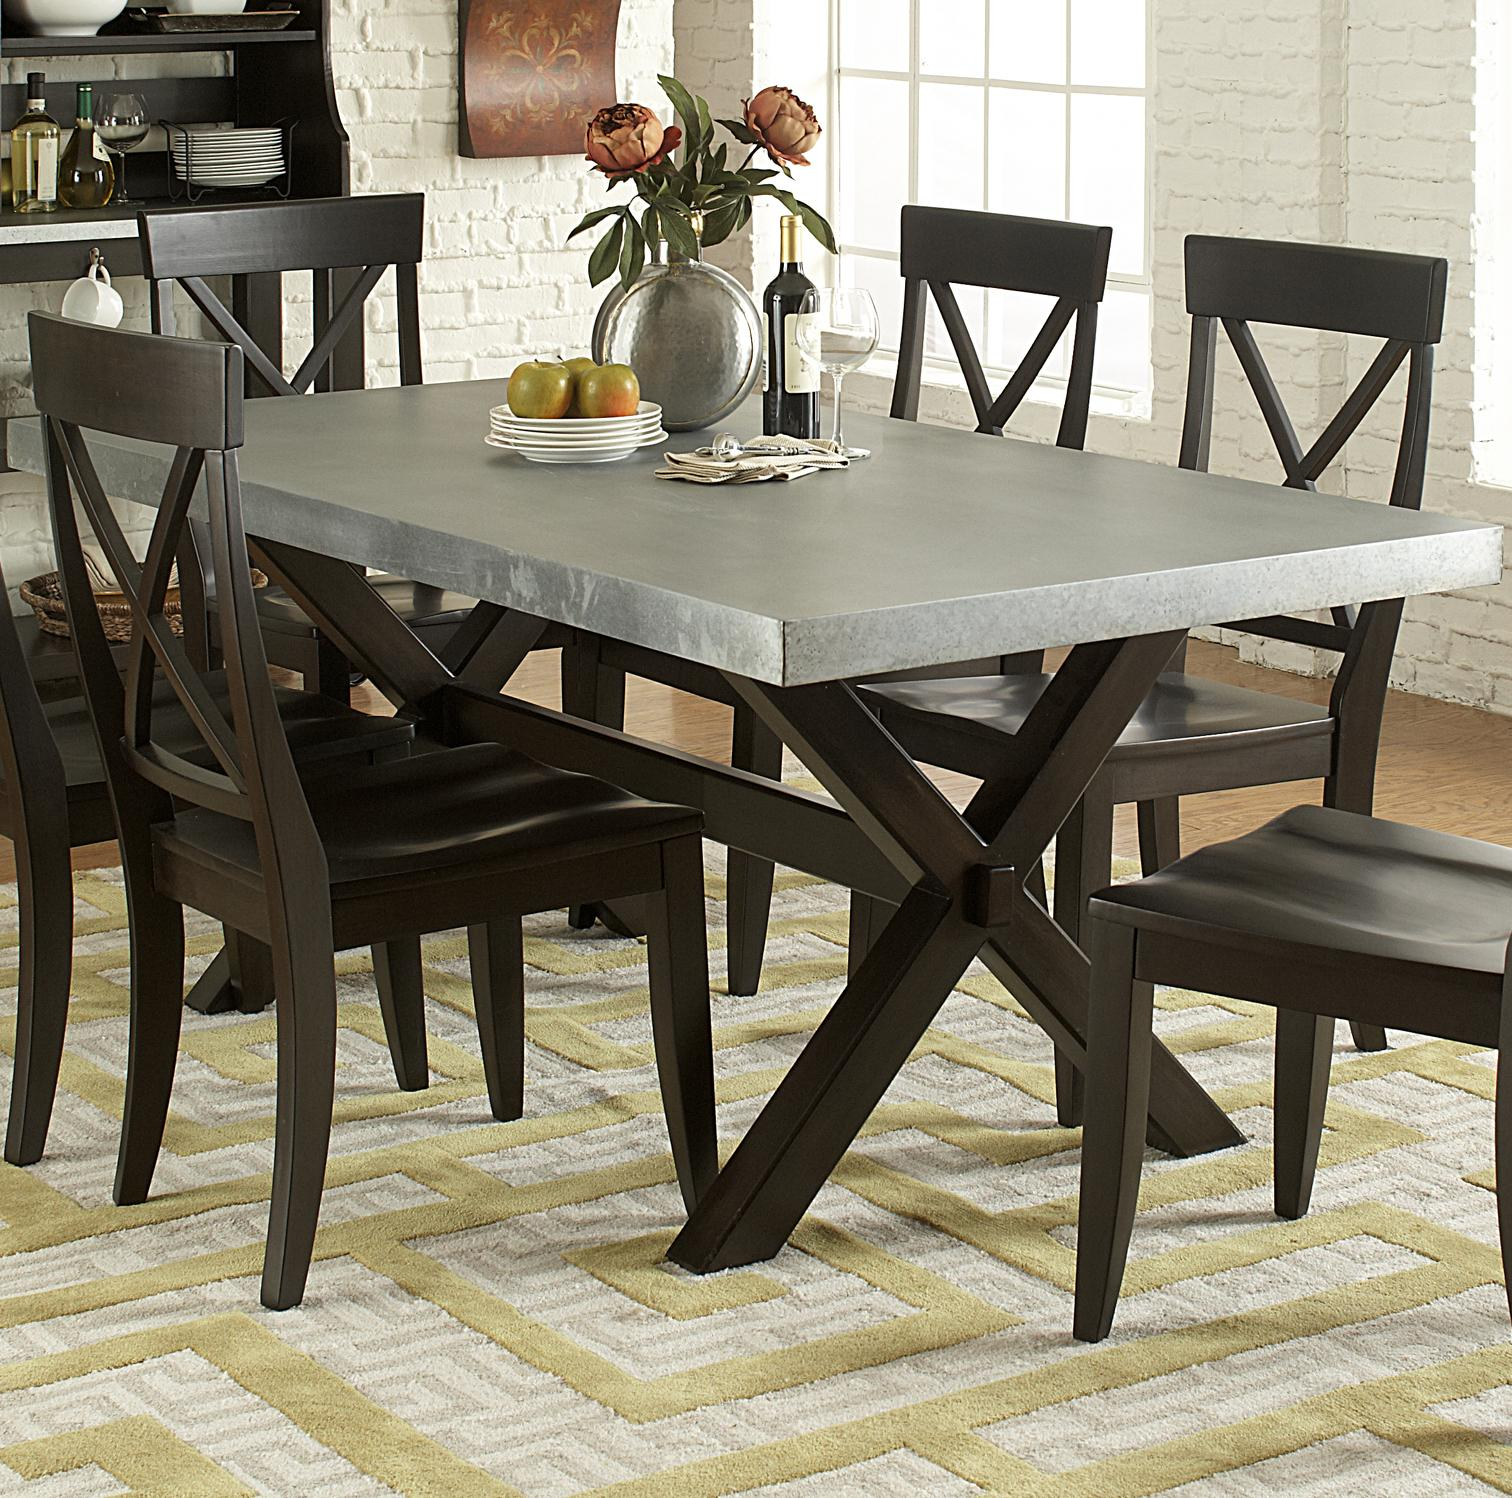 liberty furniture keaton ii 219 t3876 rectangle trestle dining table with metal top lapeer. Black Bedroom Furniture Sets. Home Design Ideas